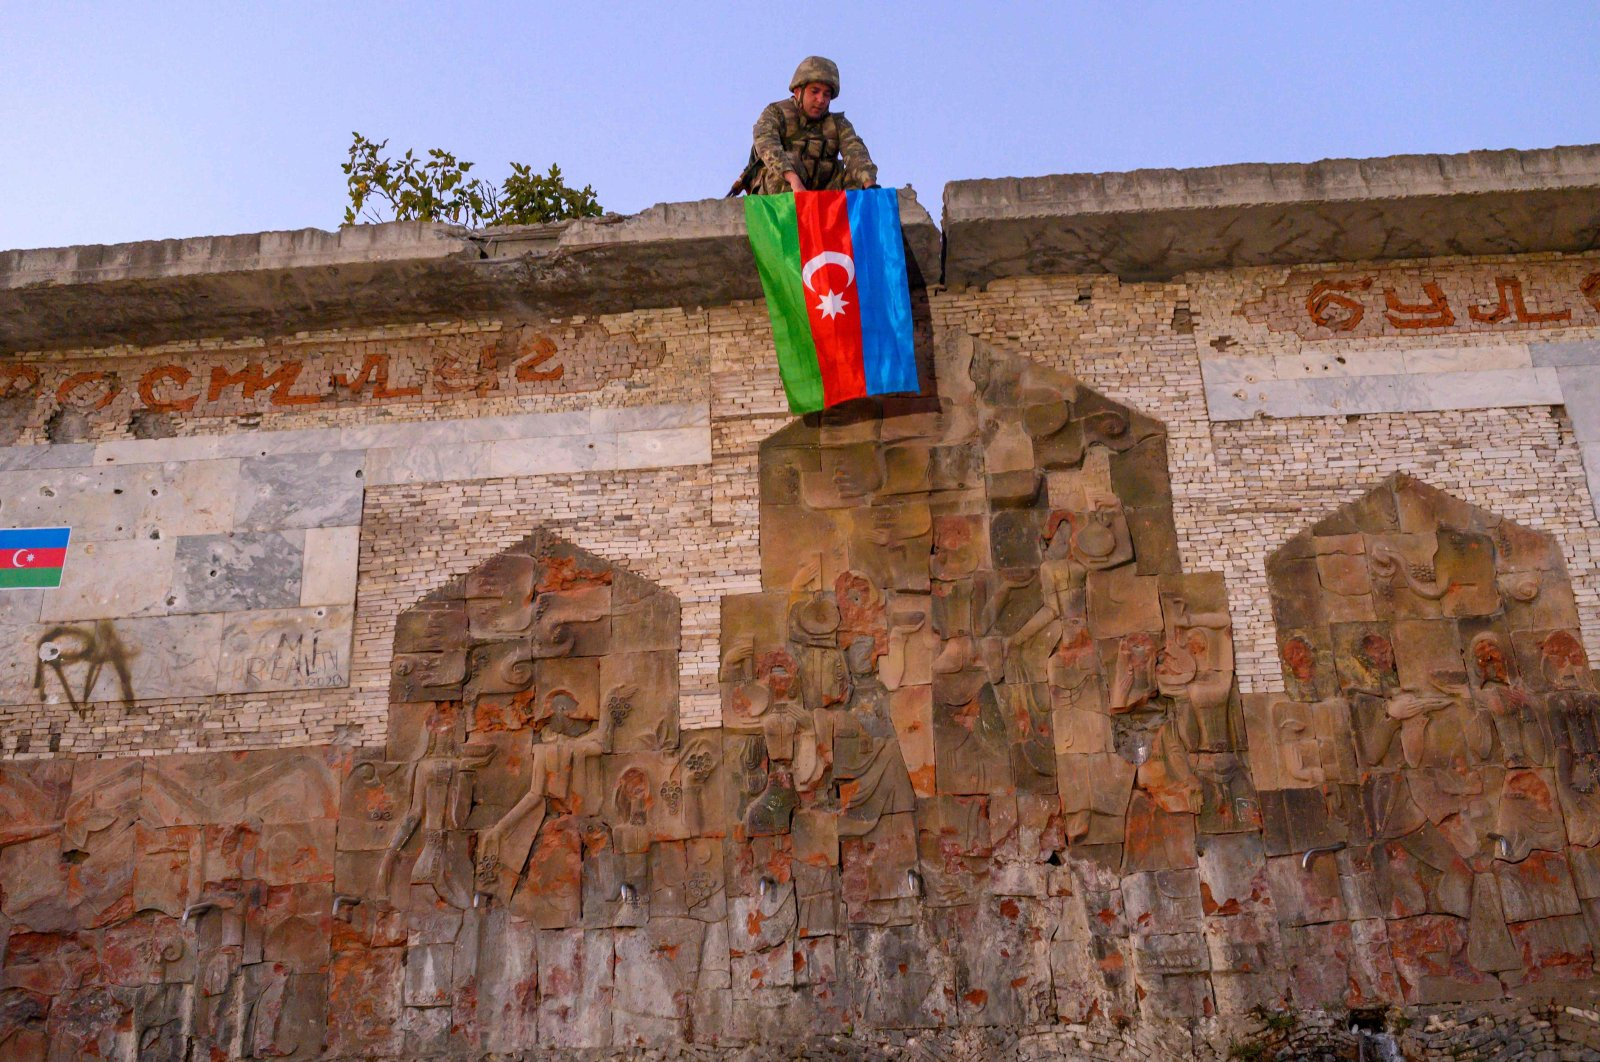 An Azerbaijani soldier hangs the flag of Azerbaijan in the city of Jabrayil, where Azerbaijani forces regained control during the clashes with Armenia over occupied Nagorno-Karabakh on Oct. 16, 2020. (AFP Photo)